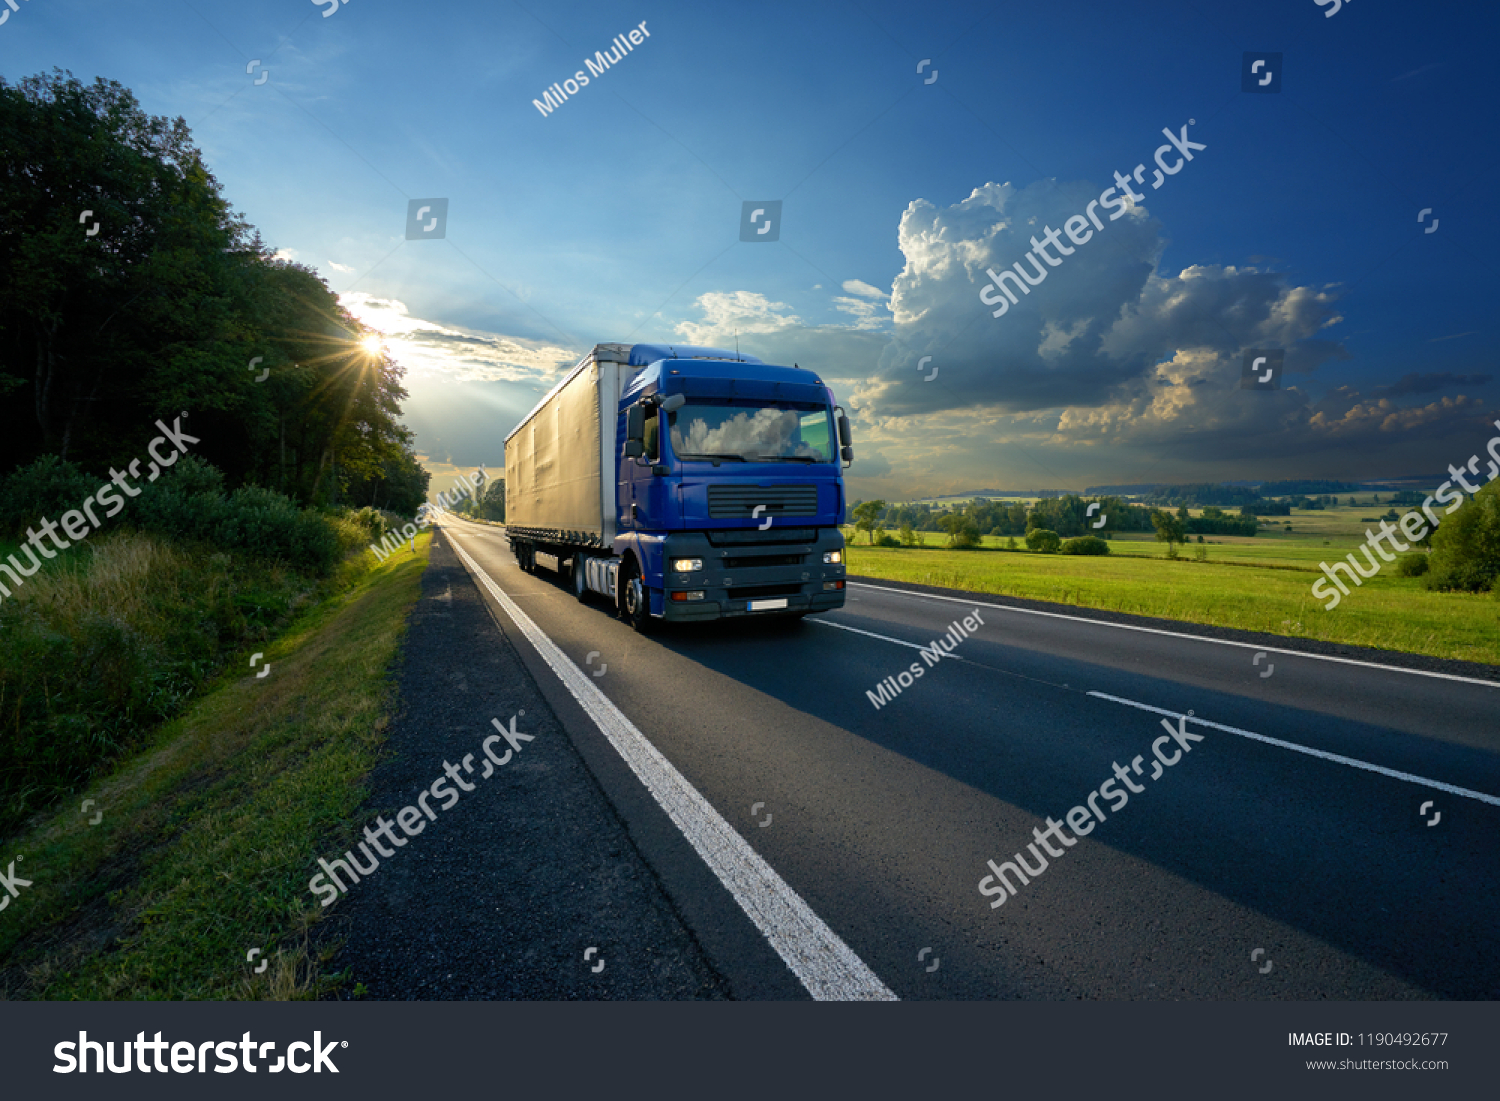 Blue truck arriving on the asphalt road in rural landscape in the rays of the sunset                                #1190492677